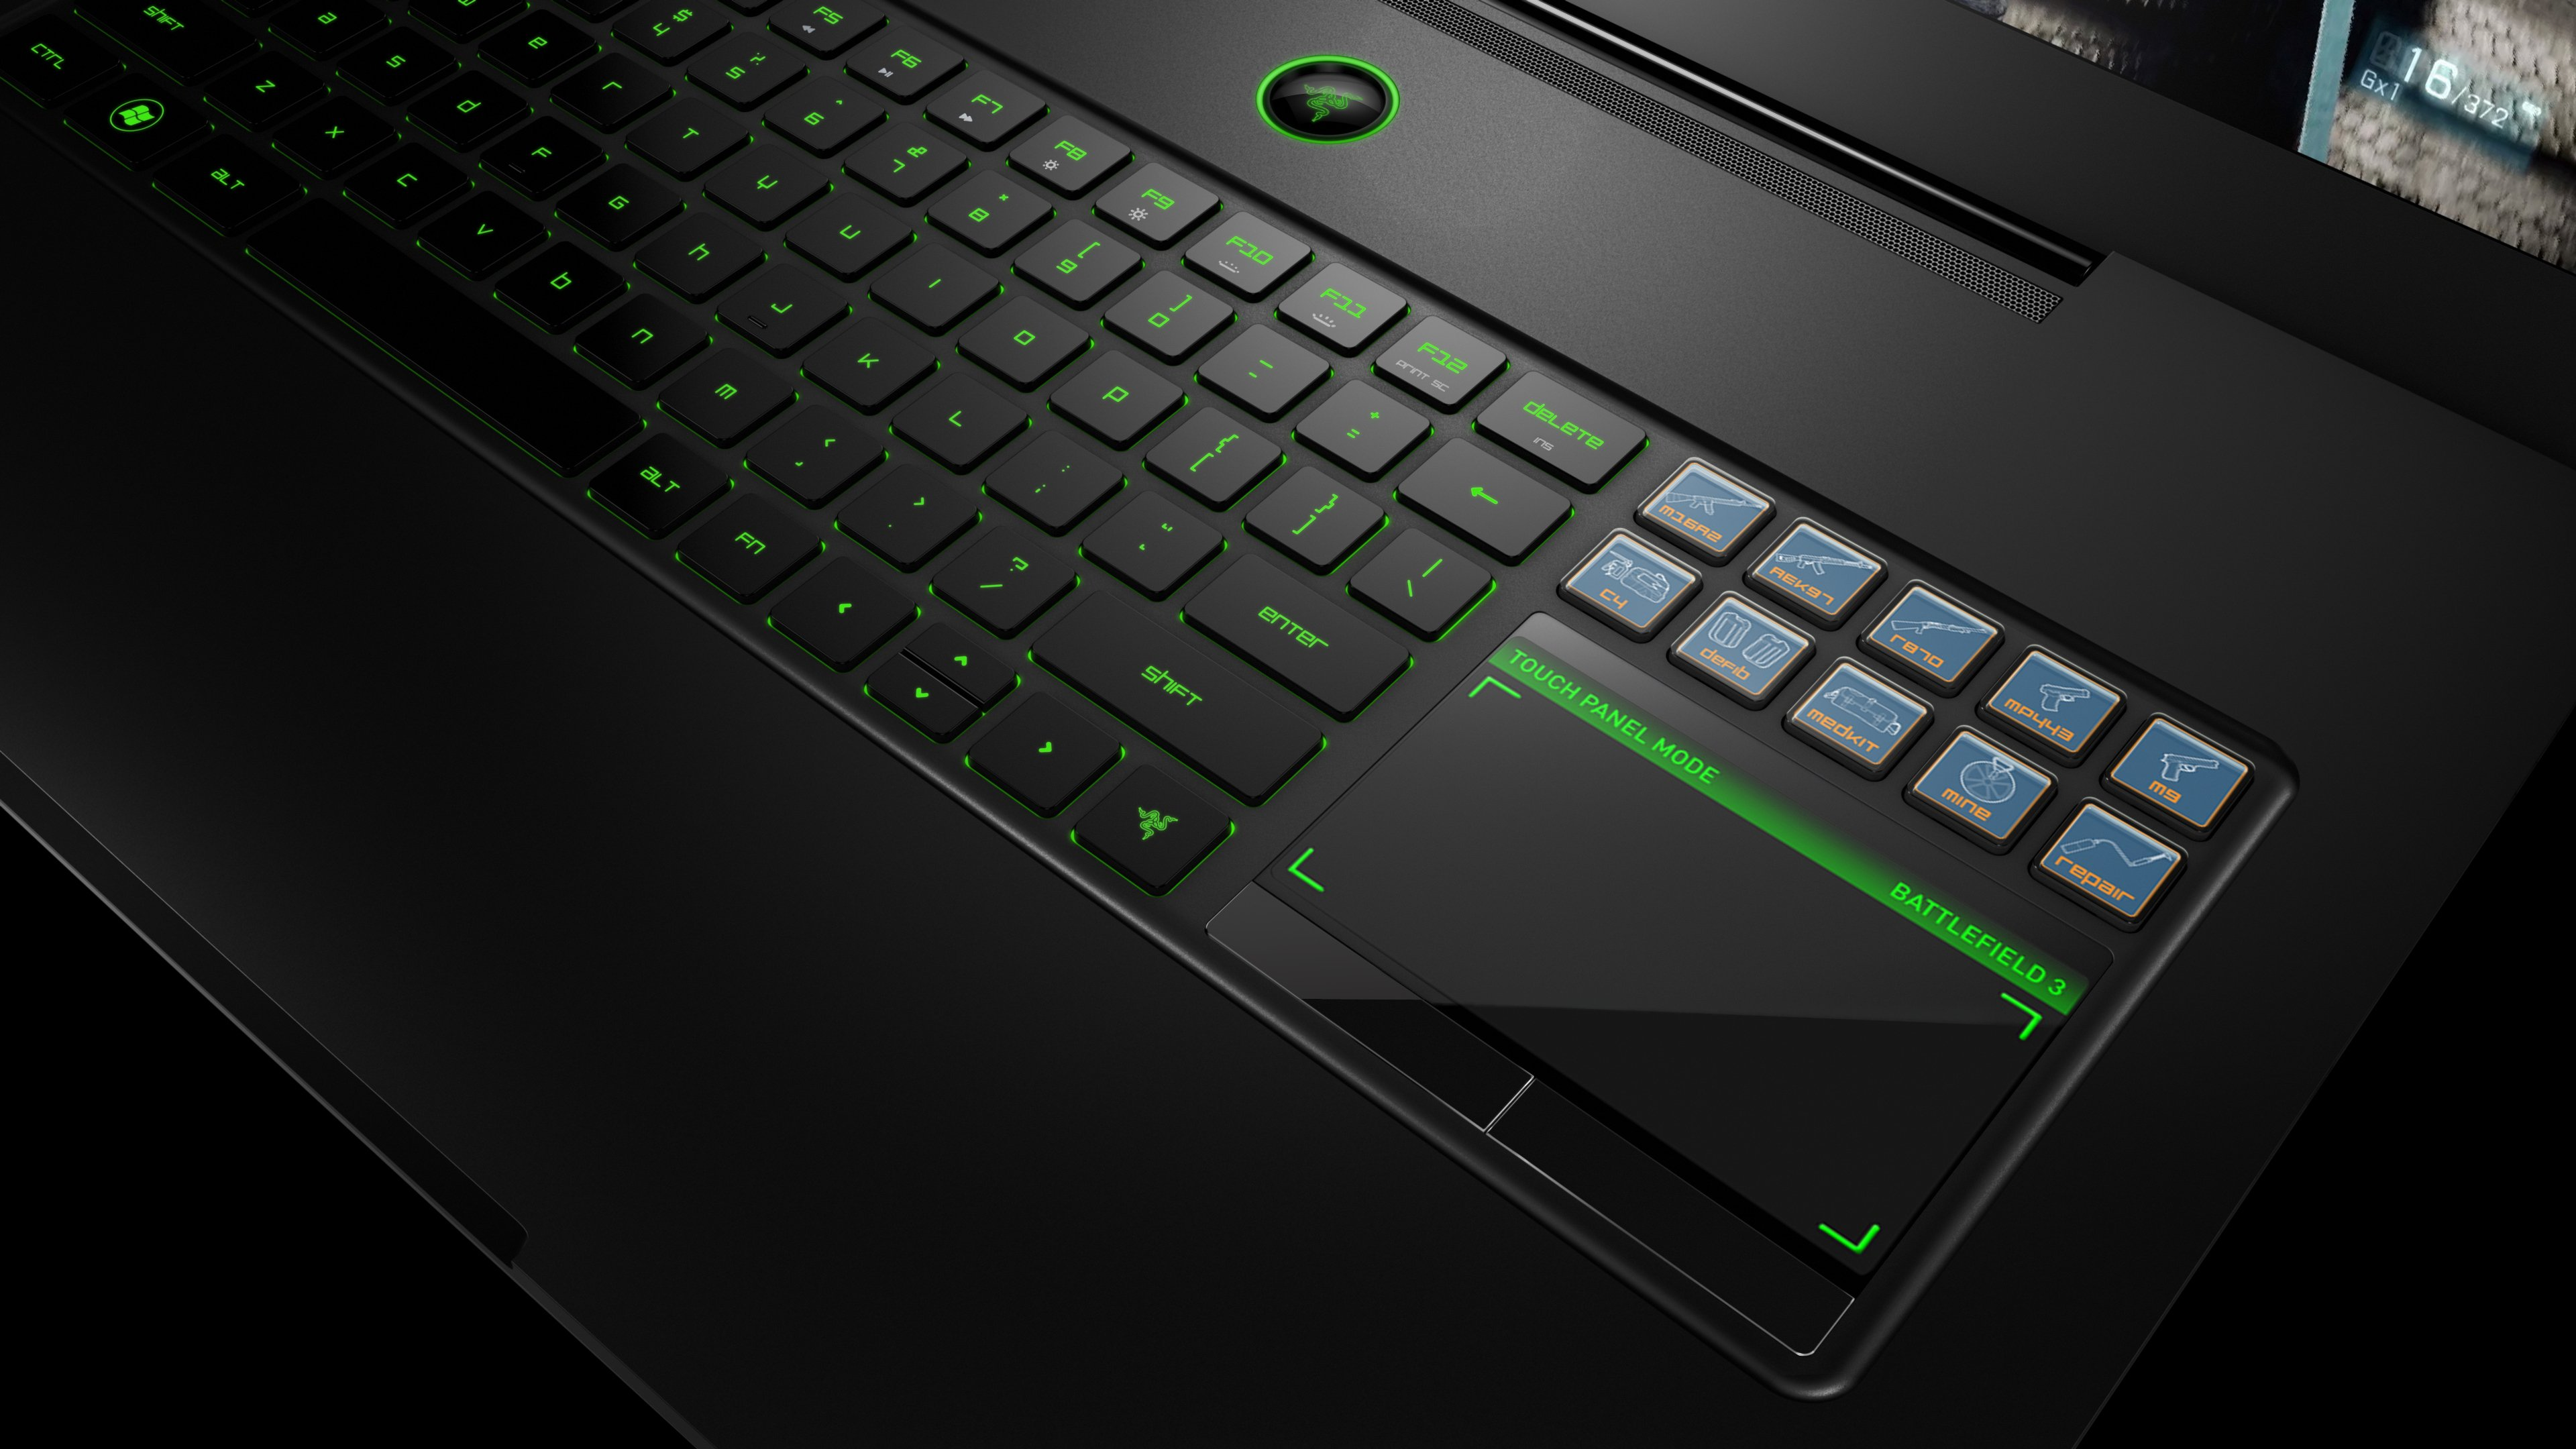 4K wallpaper   Hi tech   games laptop Razer blade   3840x2160 3840x2160